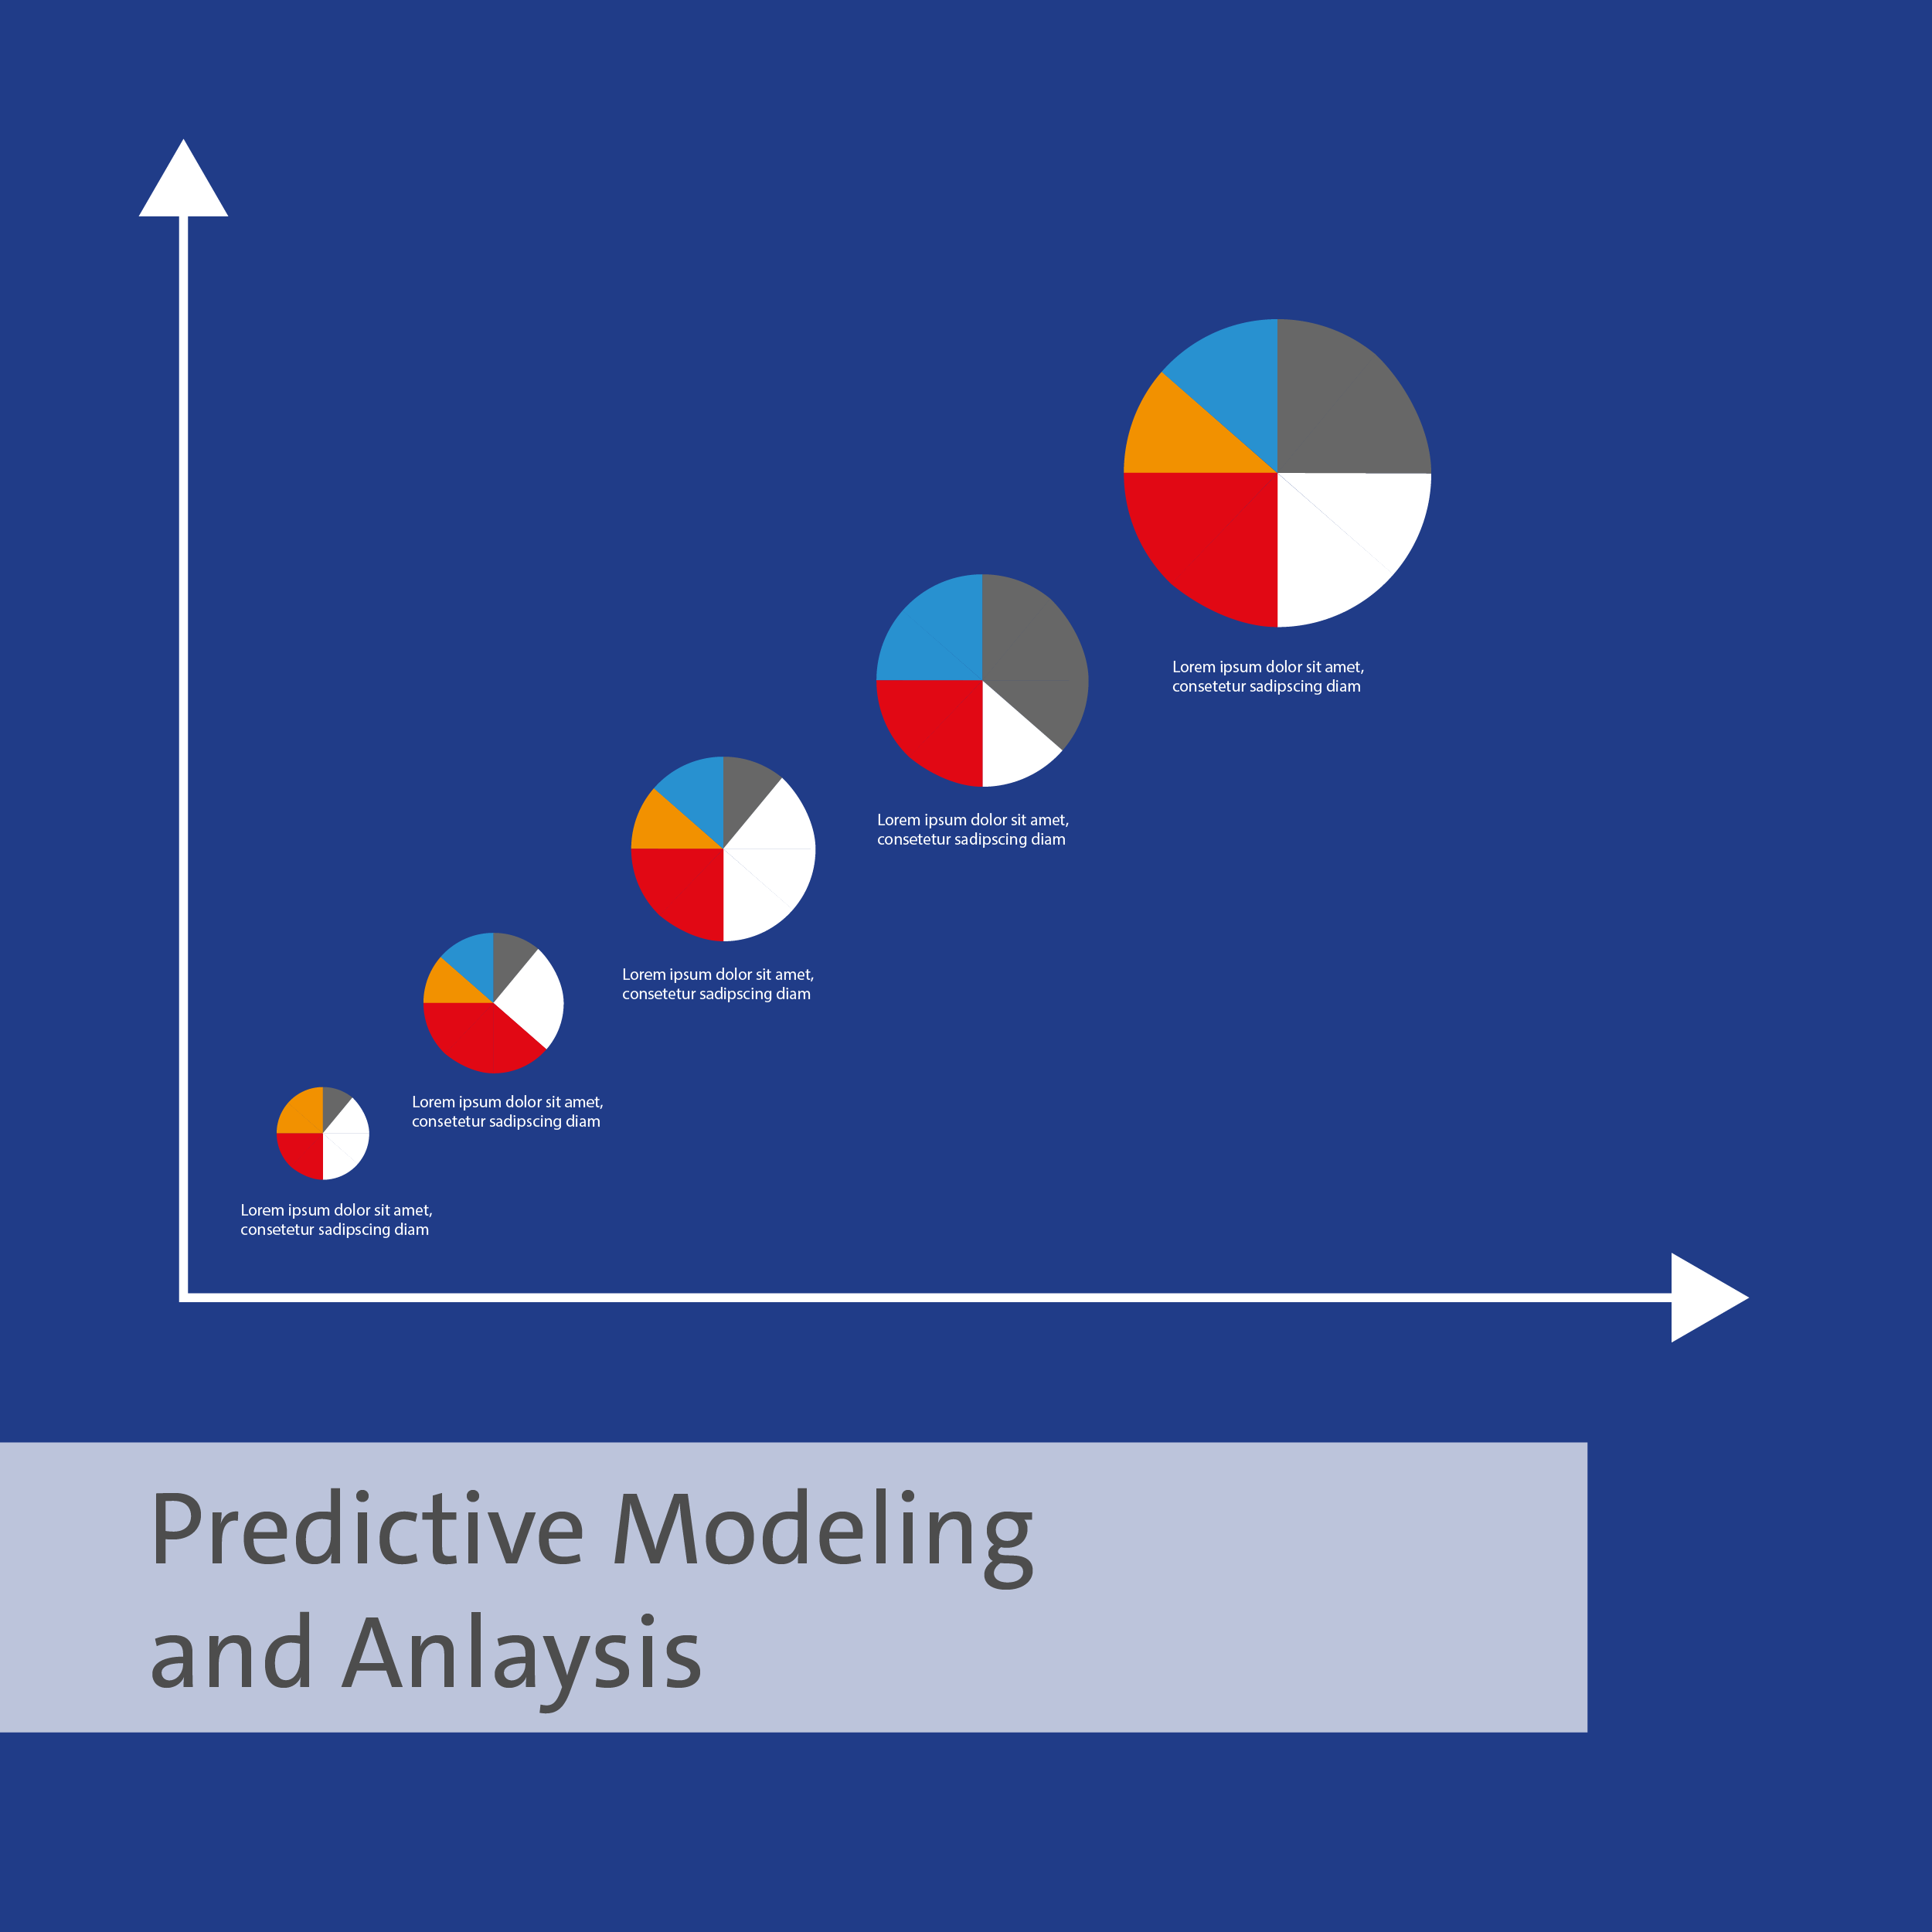 Predictive Modeling and Analysis